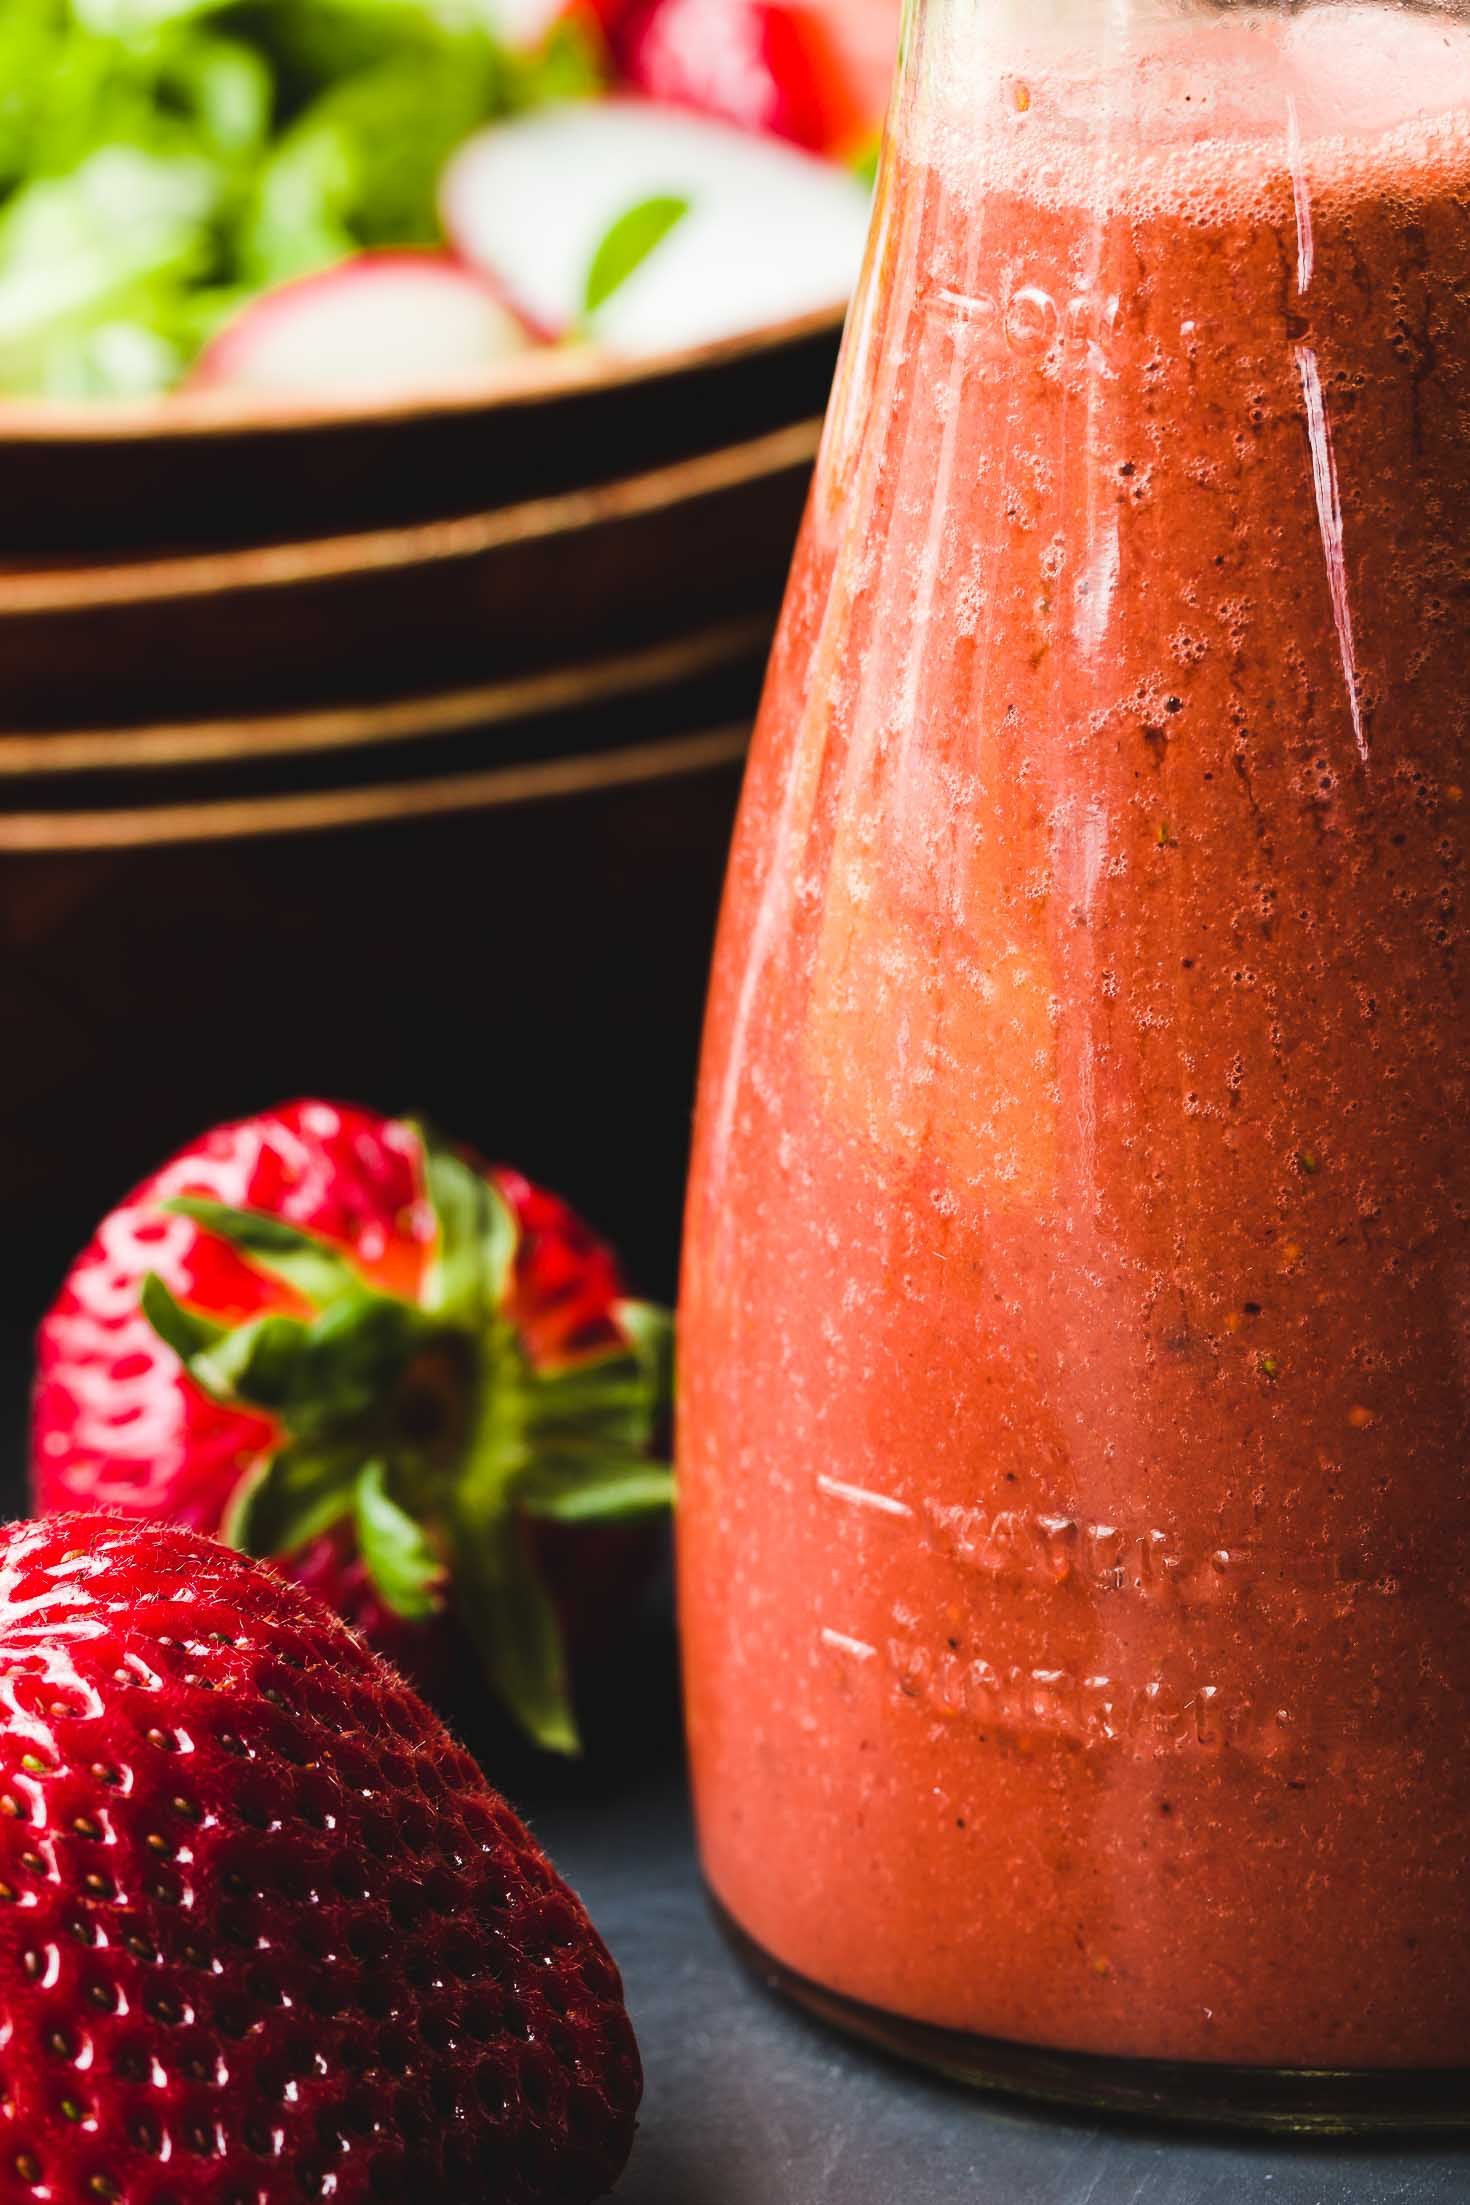 Mustard Seeds Strawberry Balsamic Vinaigrette Dressing-closeup view-dressing in a glass jar and two strawberries on the left side